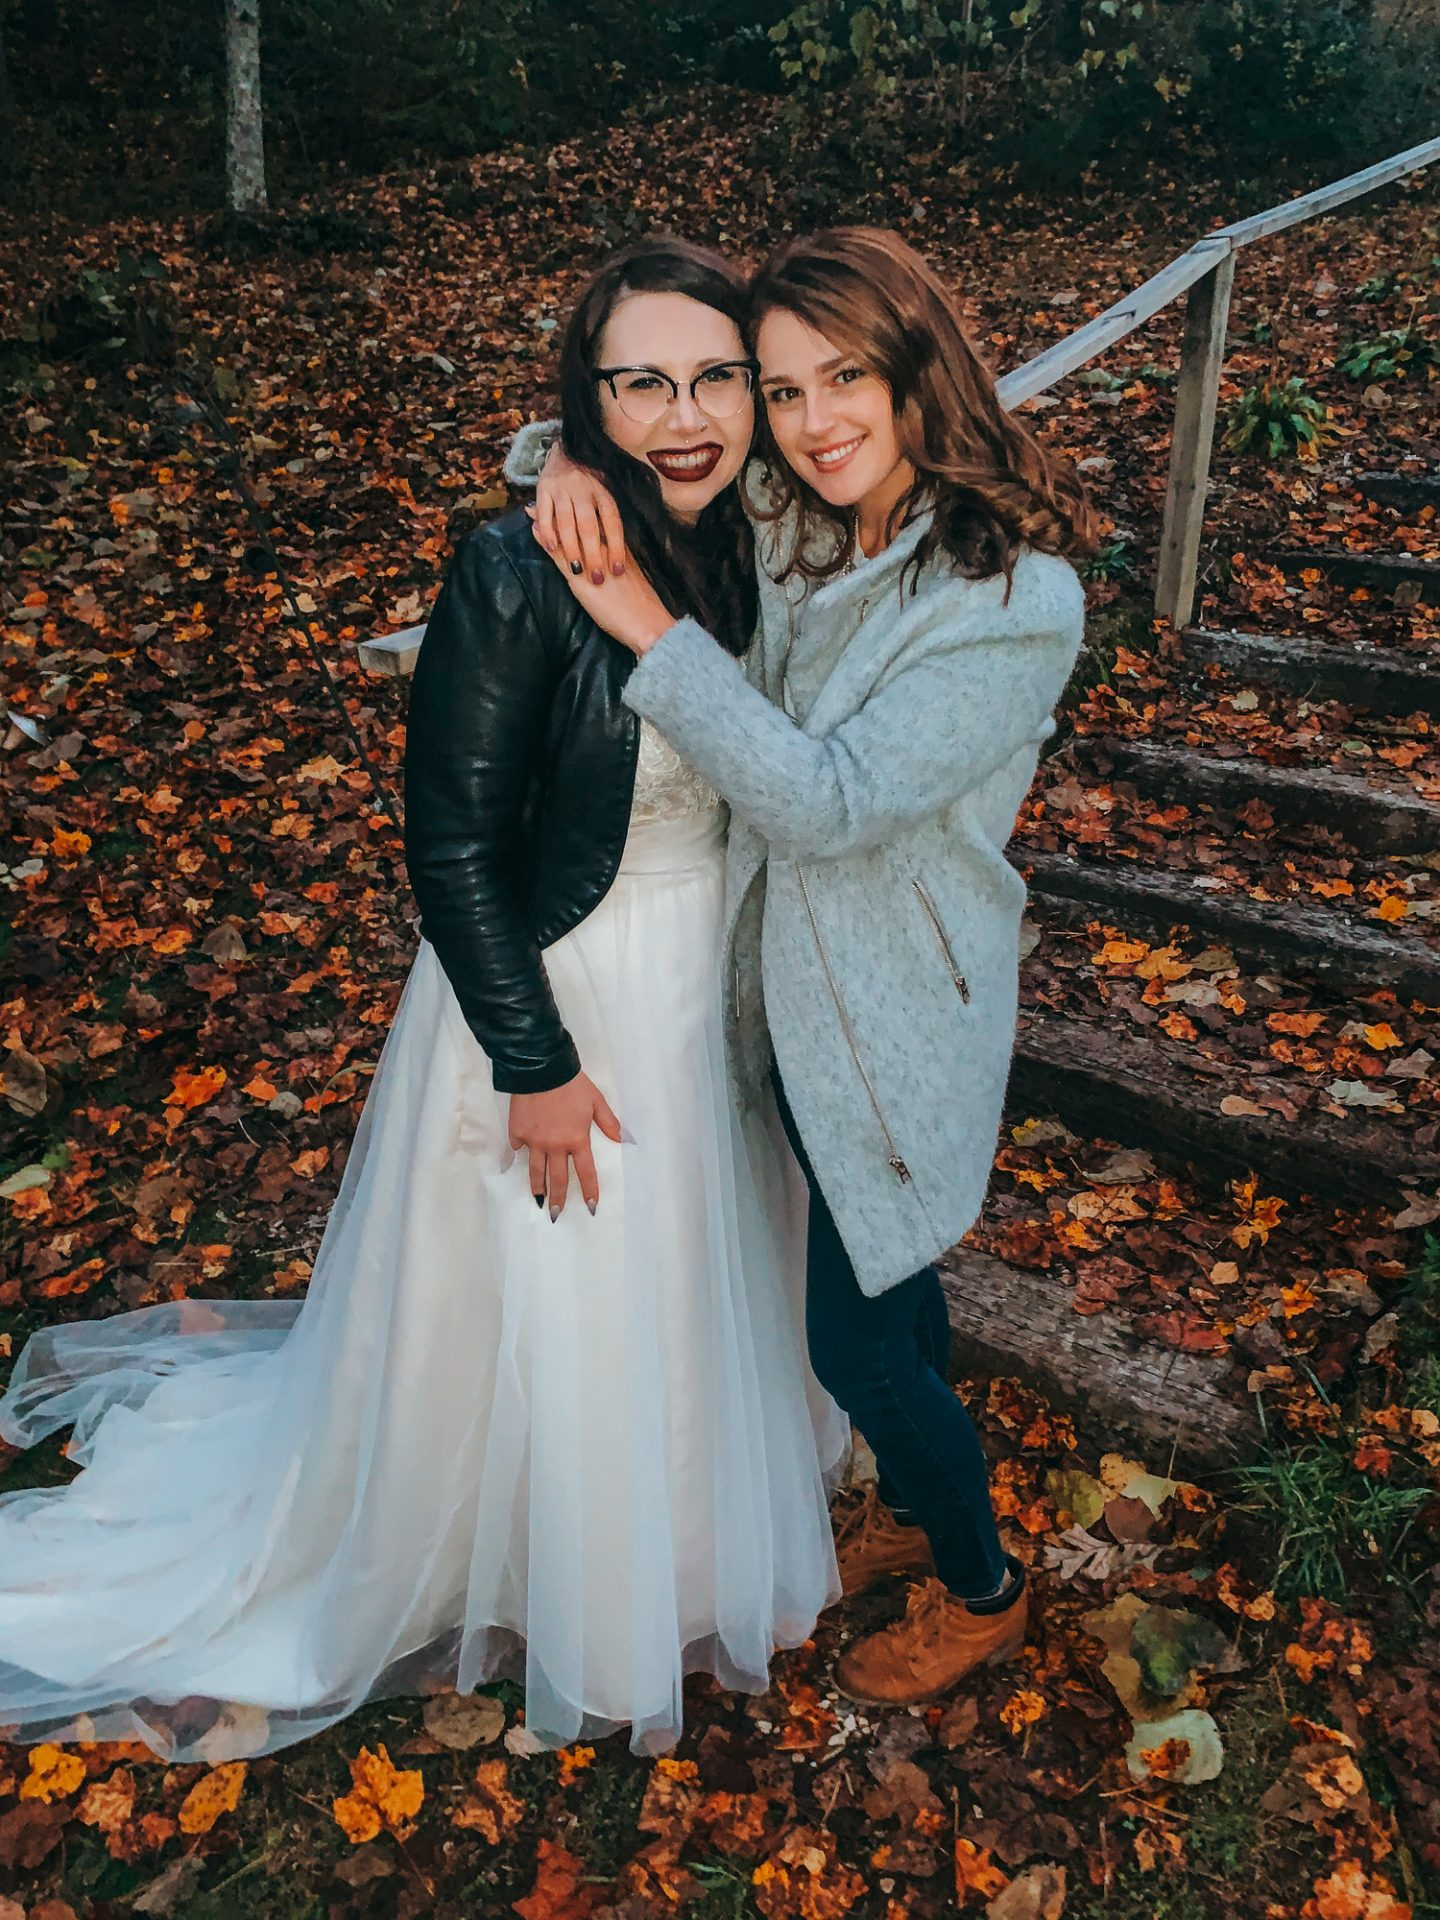 wedding, brevard, Pisgah forest, best friend, wedding, Beccas wedding, bed and breakfast, fall, halloween, weekend, life, fun, cookies, cookie cake, decor